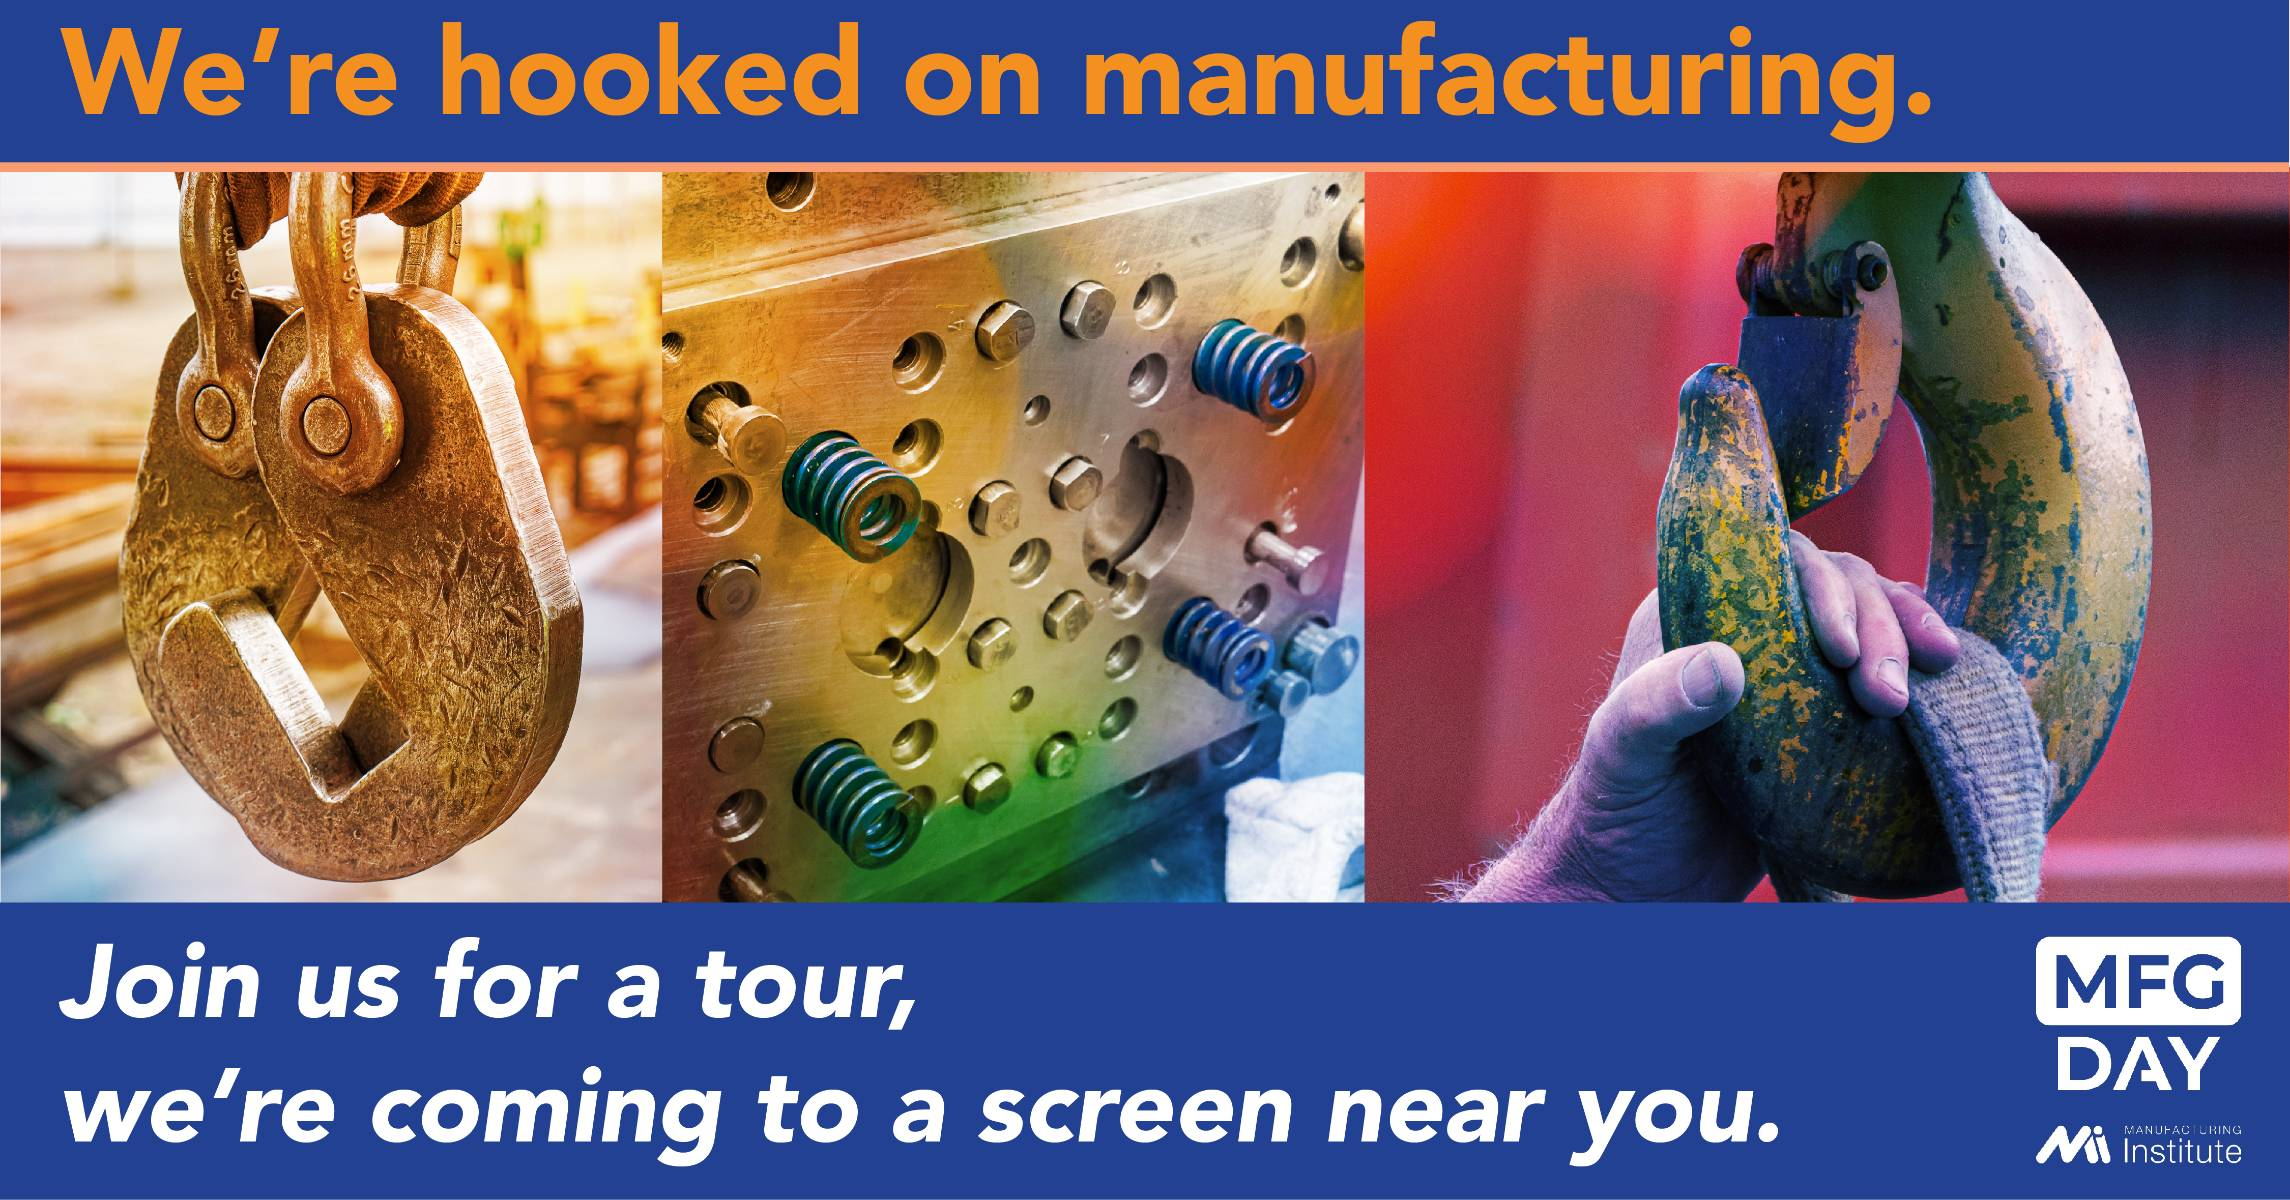 We're hooked on manufacturing, it only takes a screen and a connection to visit the world of manufacturing.